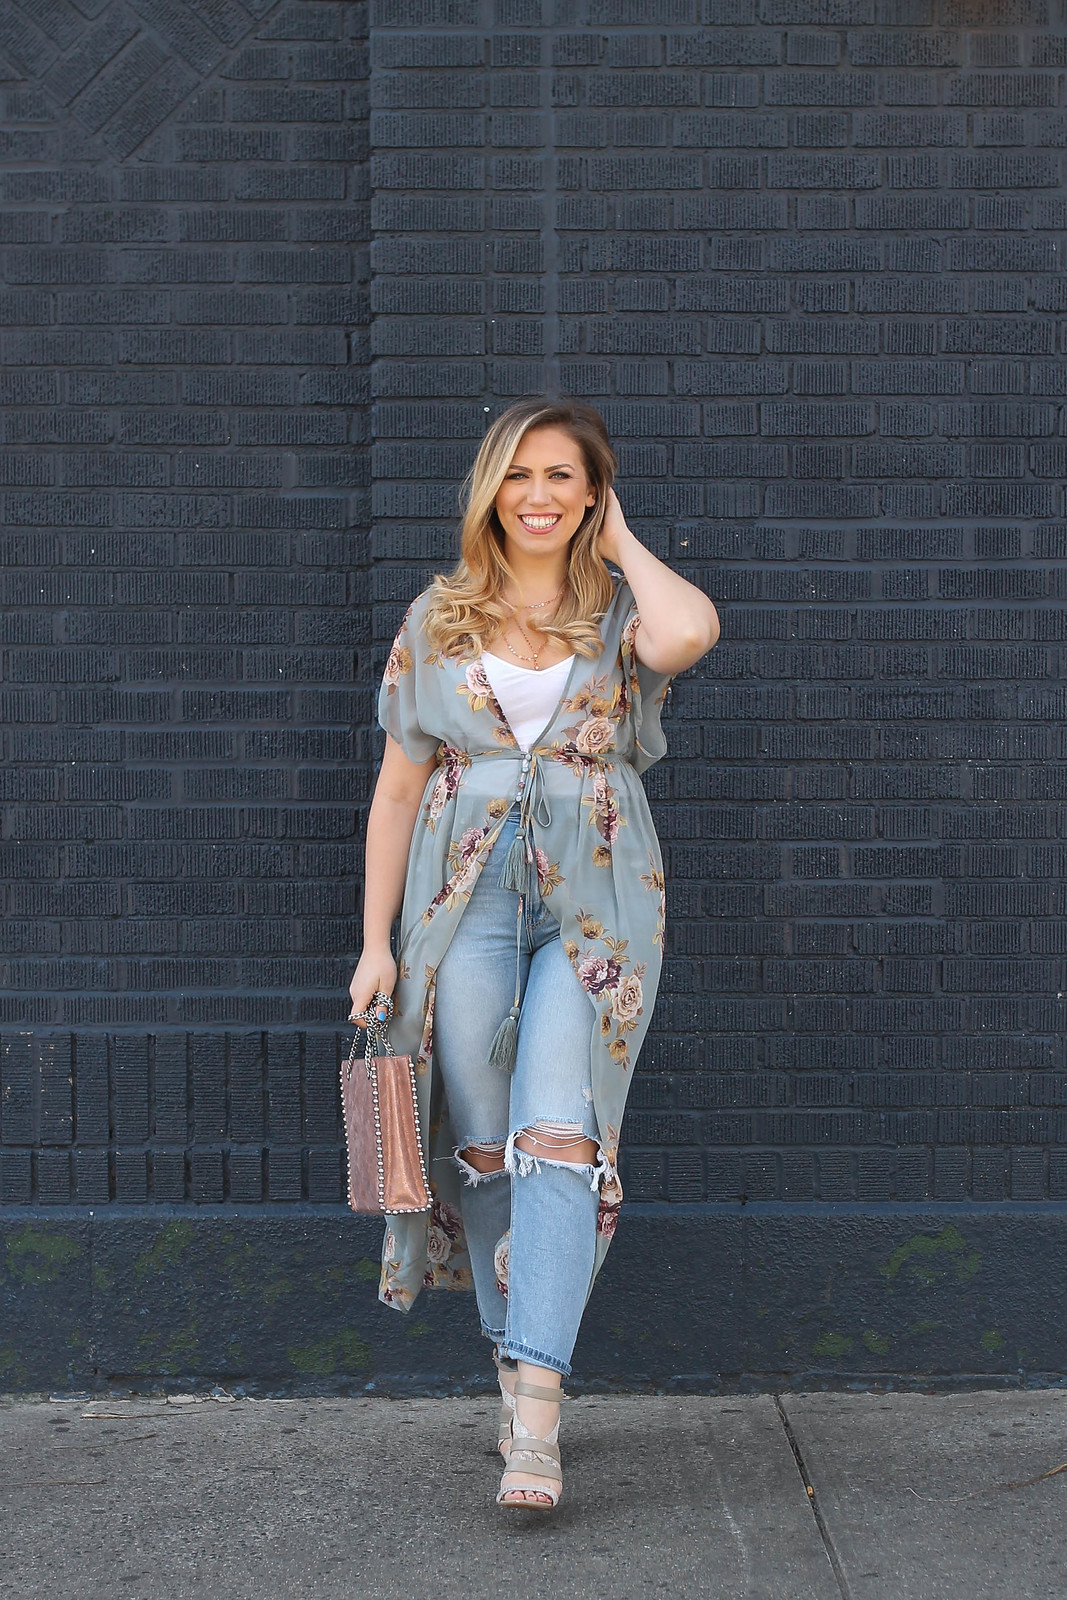 Floral Duster Sheer Kimono Outfit Mom Jeans Rose Gold Studded Zara Bag Spring Feminine Outfit Jackie Giardina